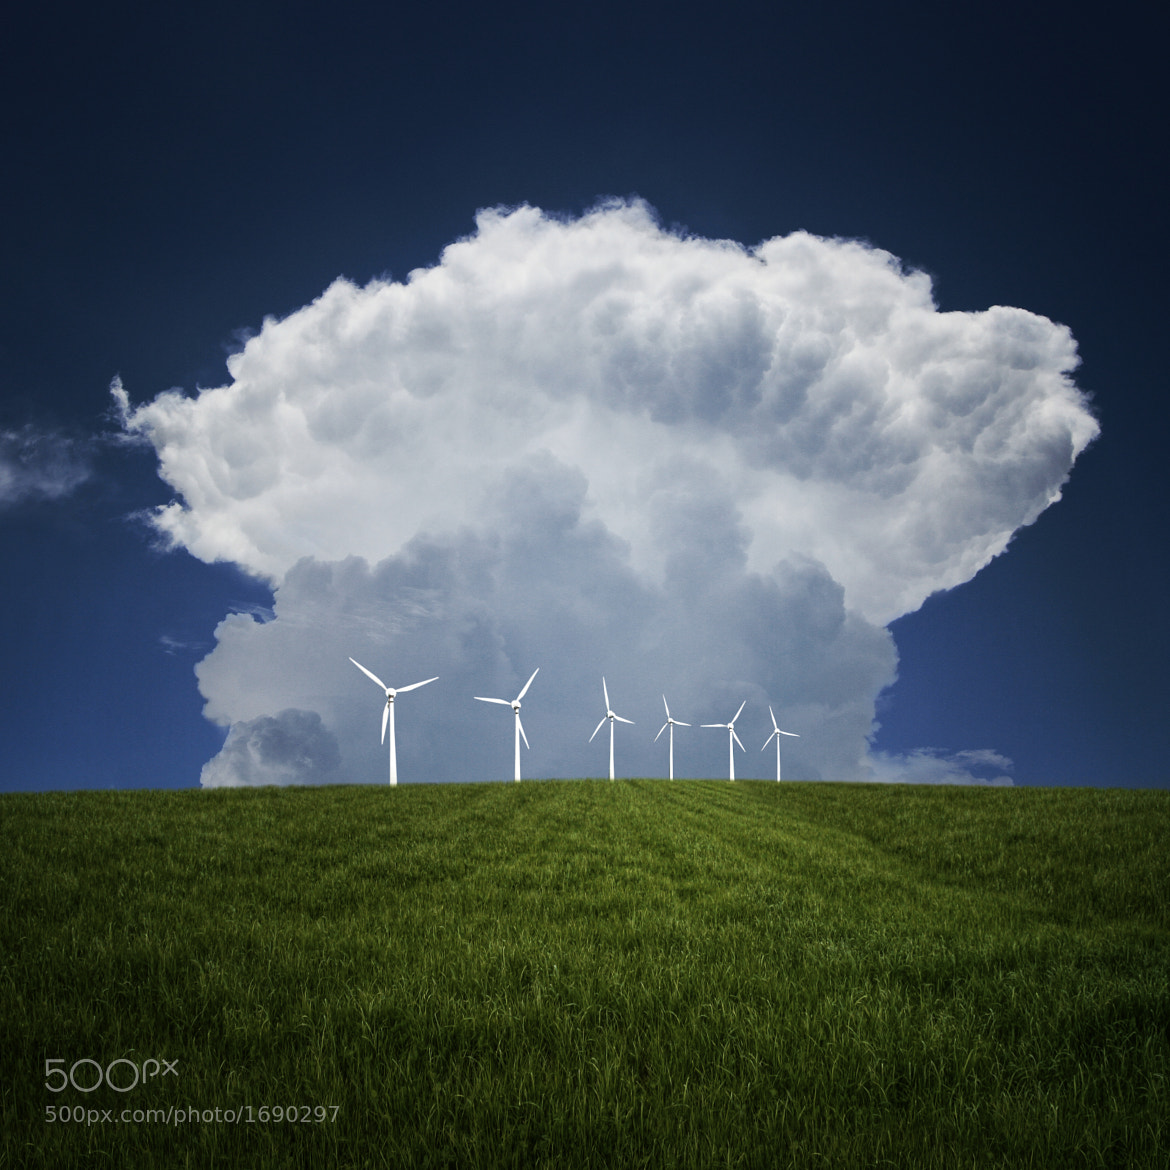 Photograph The Power of the Wind by Carlos Gotay on 500px